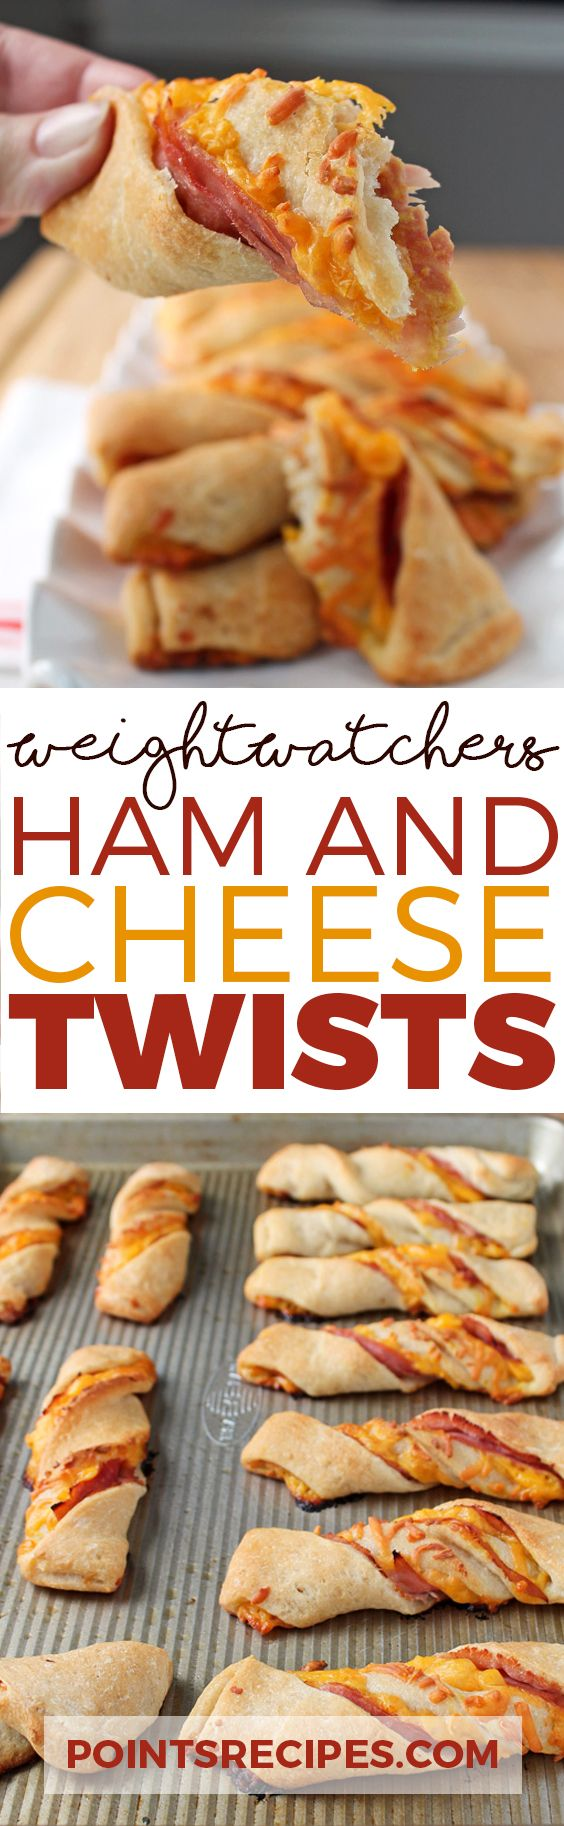 Ham and Cheese Twists (Weight Watchers SmartPoints)